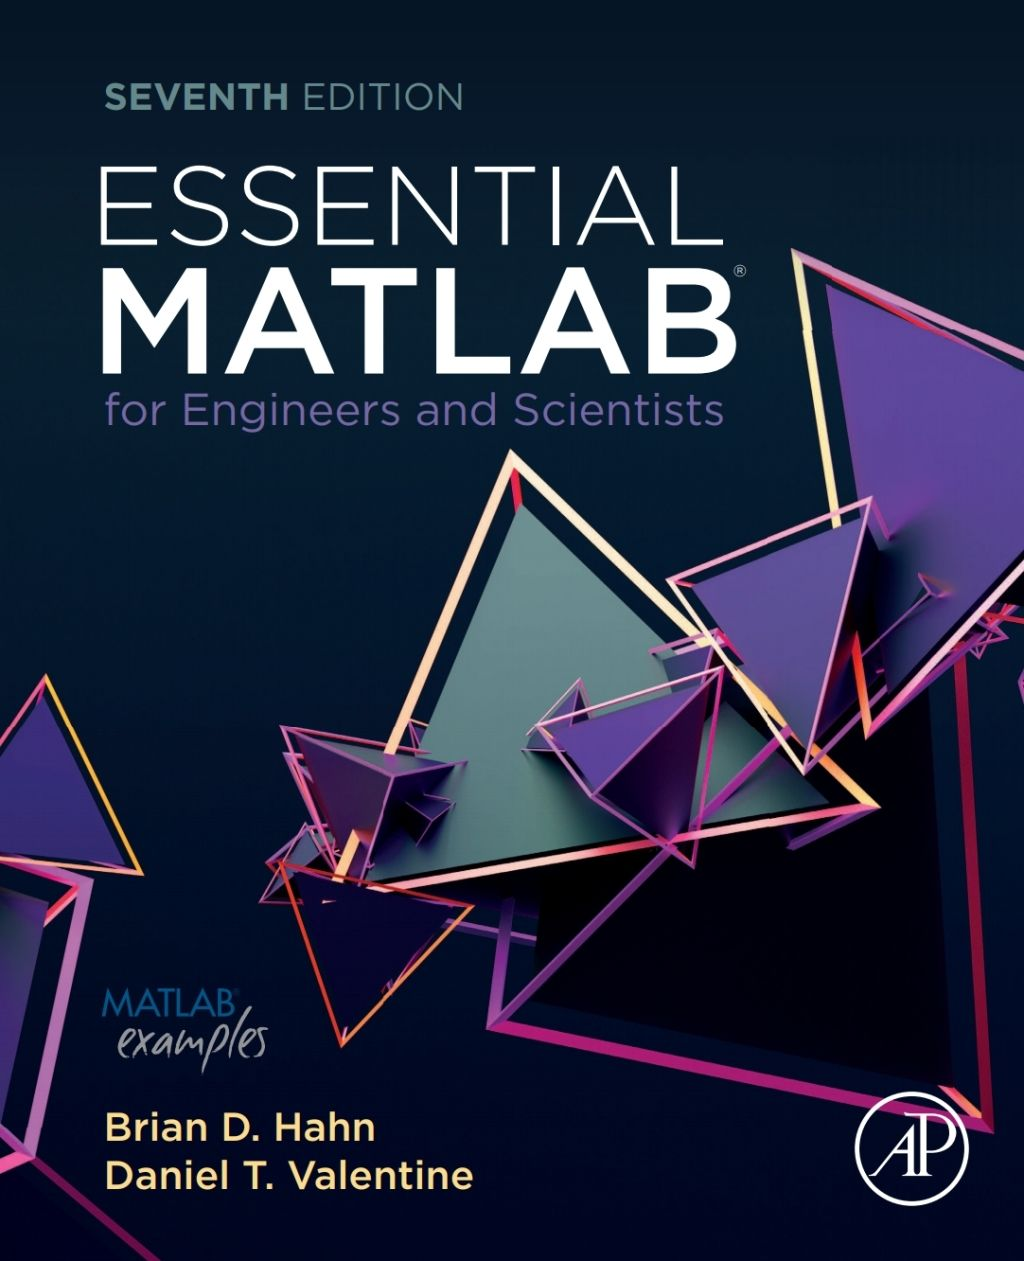 c0537b4b72c042ec4c8ed083d4105397 - Matlab And Its Applications In Engineering Free Ebook